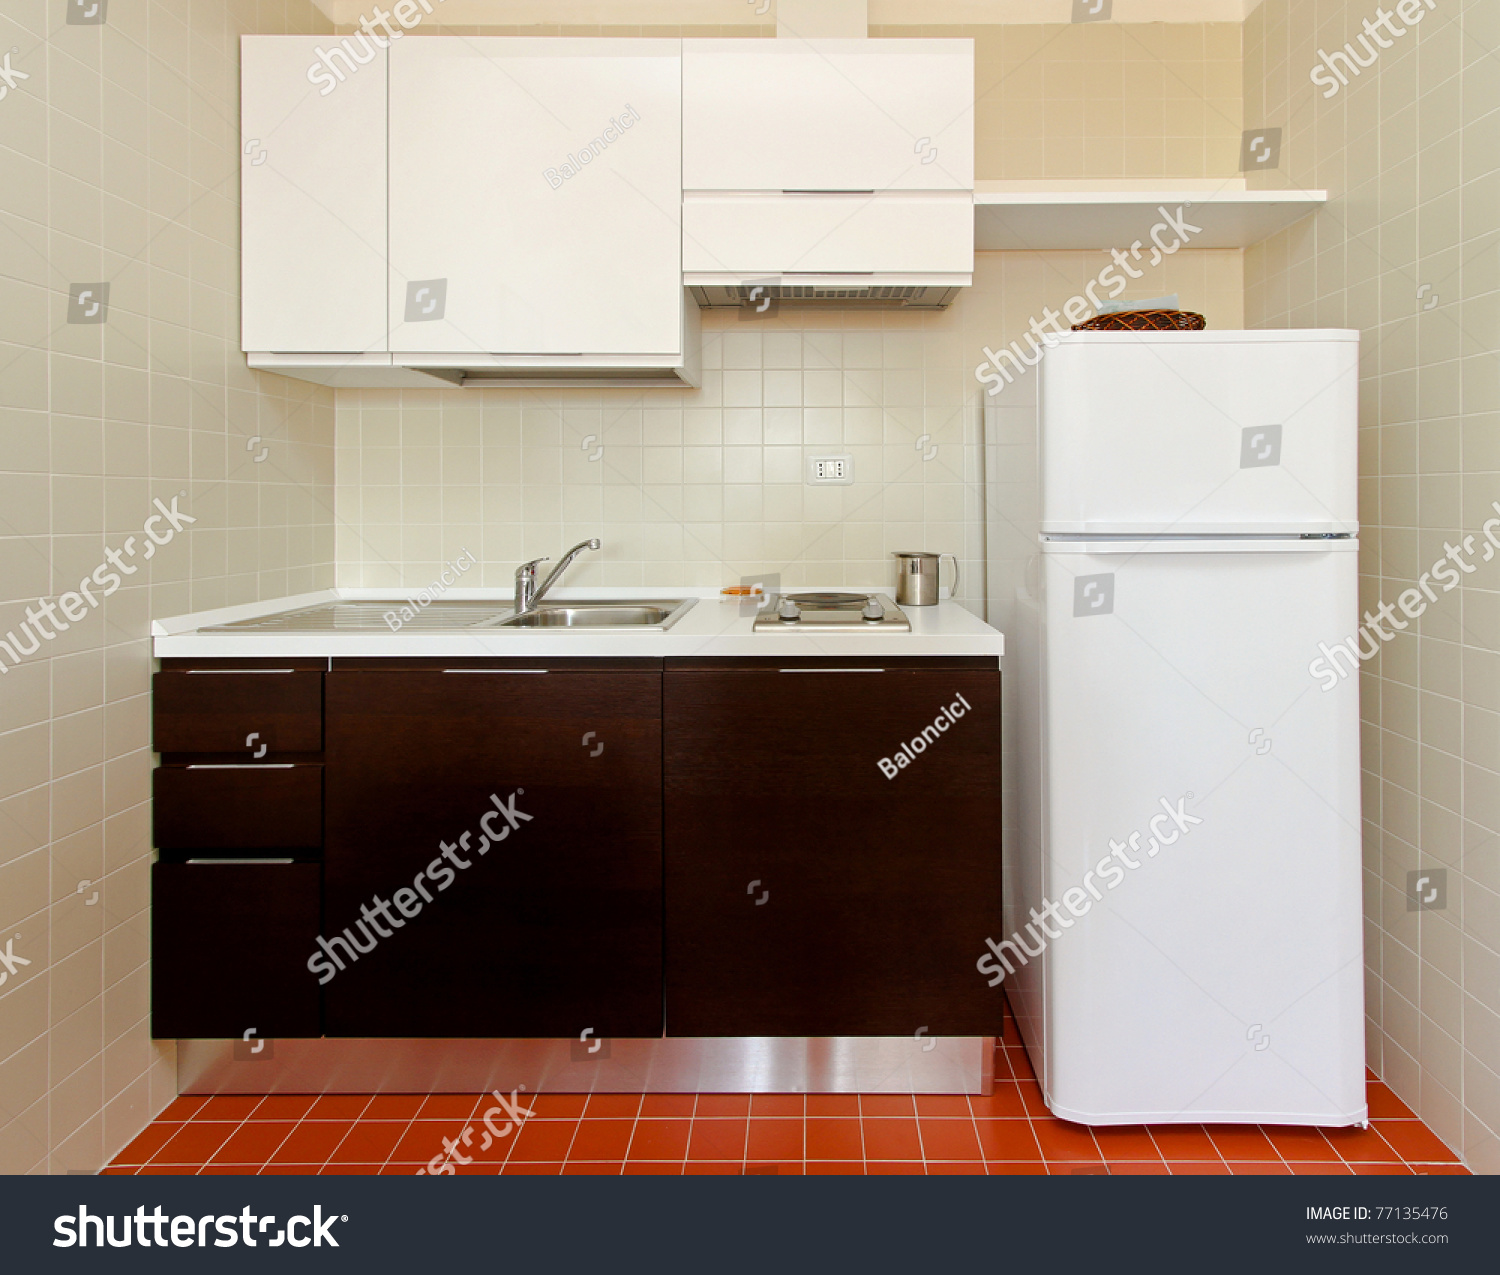 Kitchenette All Appliances Small Apartment Stock Photo 77135476 ...